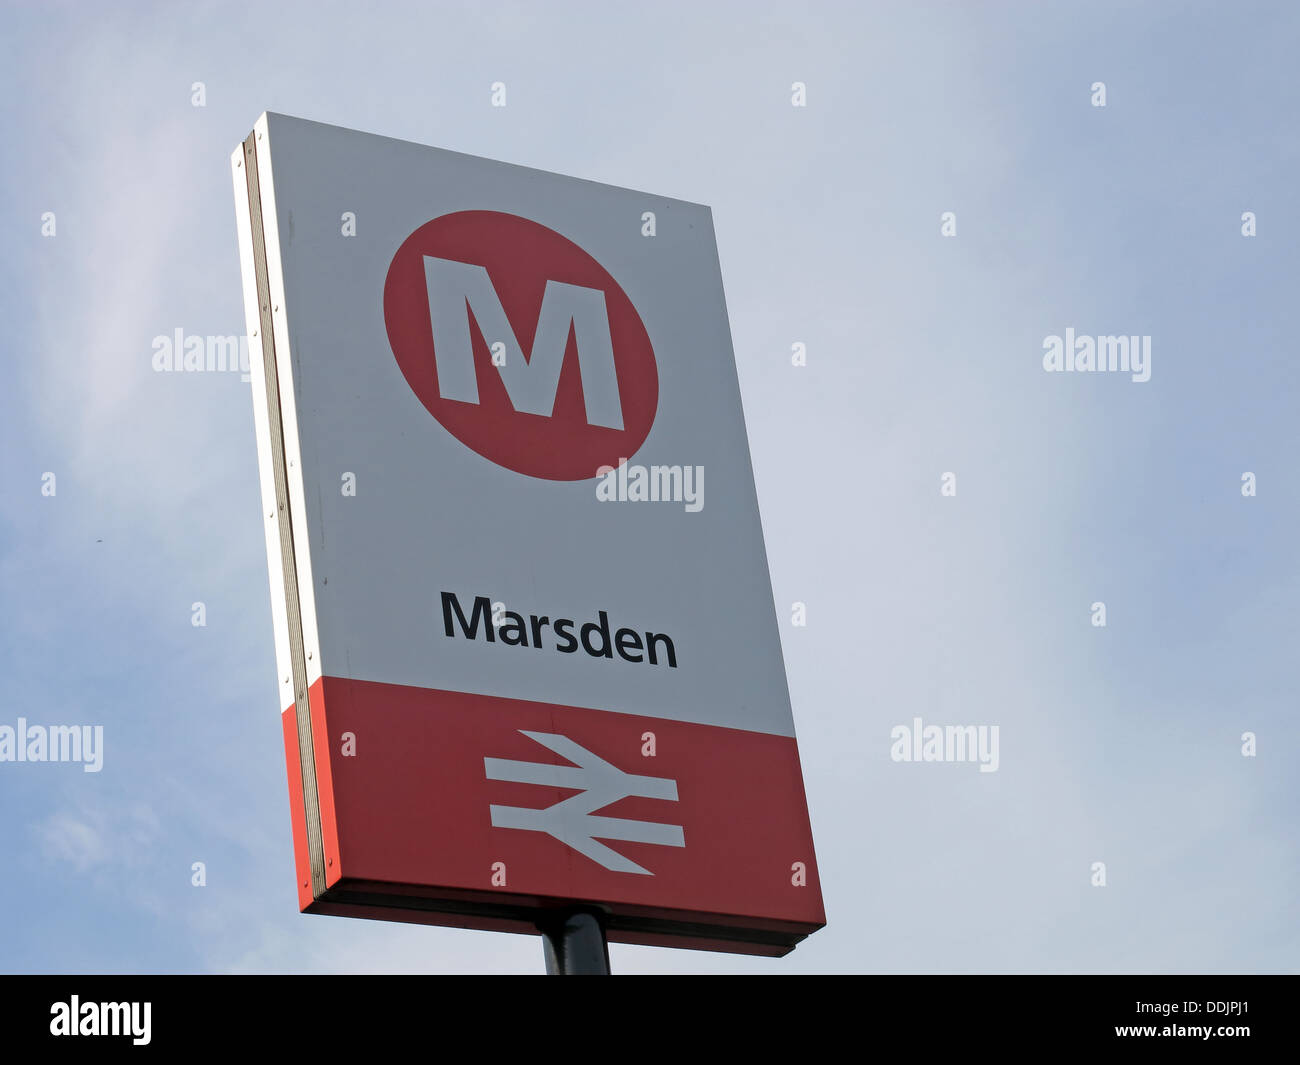 Marsden railway station sign on the Northern train line from Stalybridge to Huddersfield stop for the Riverhead brewery tap pub - Stock Image